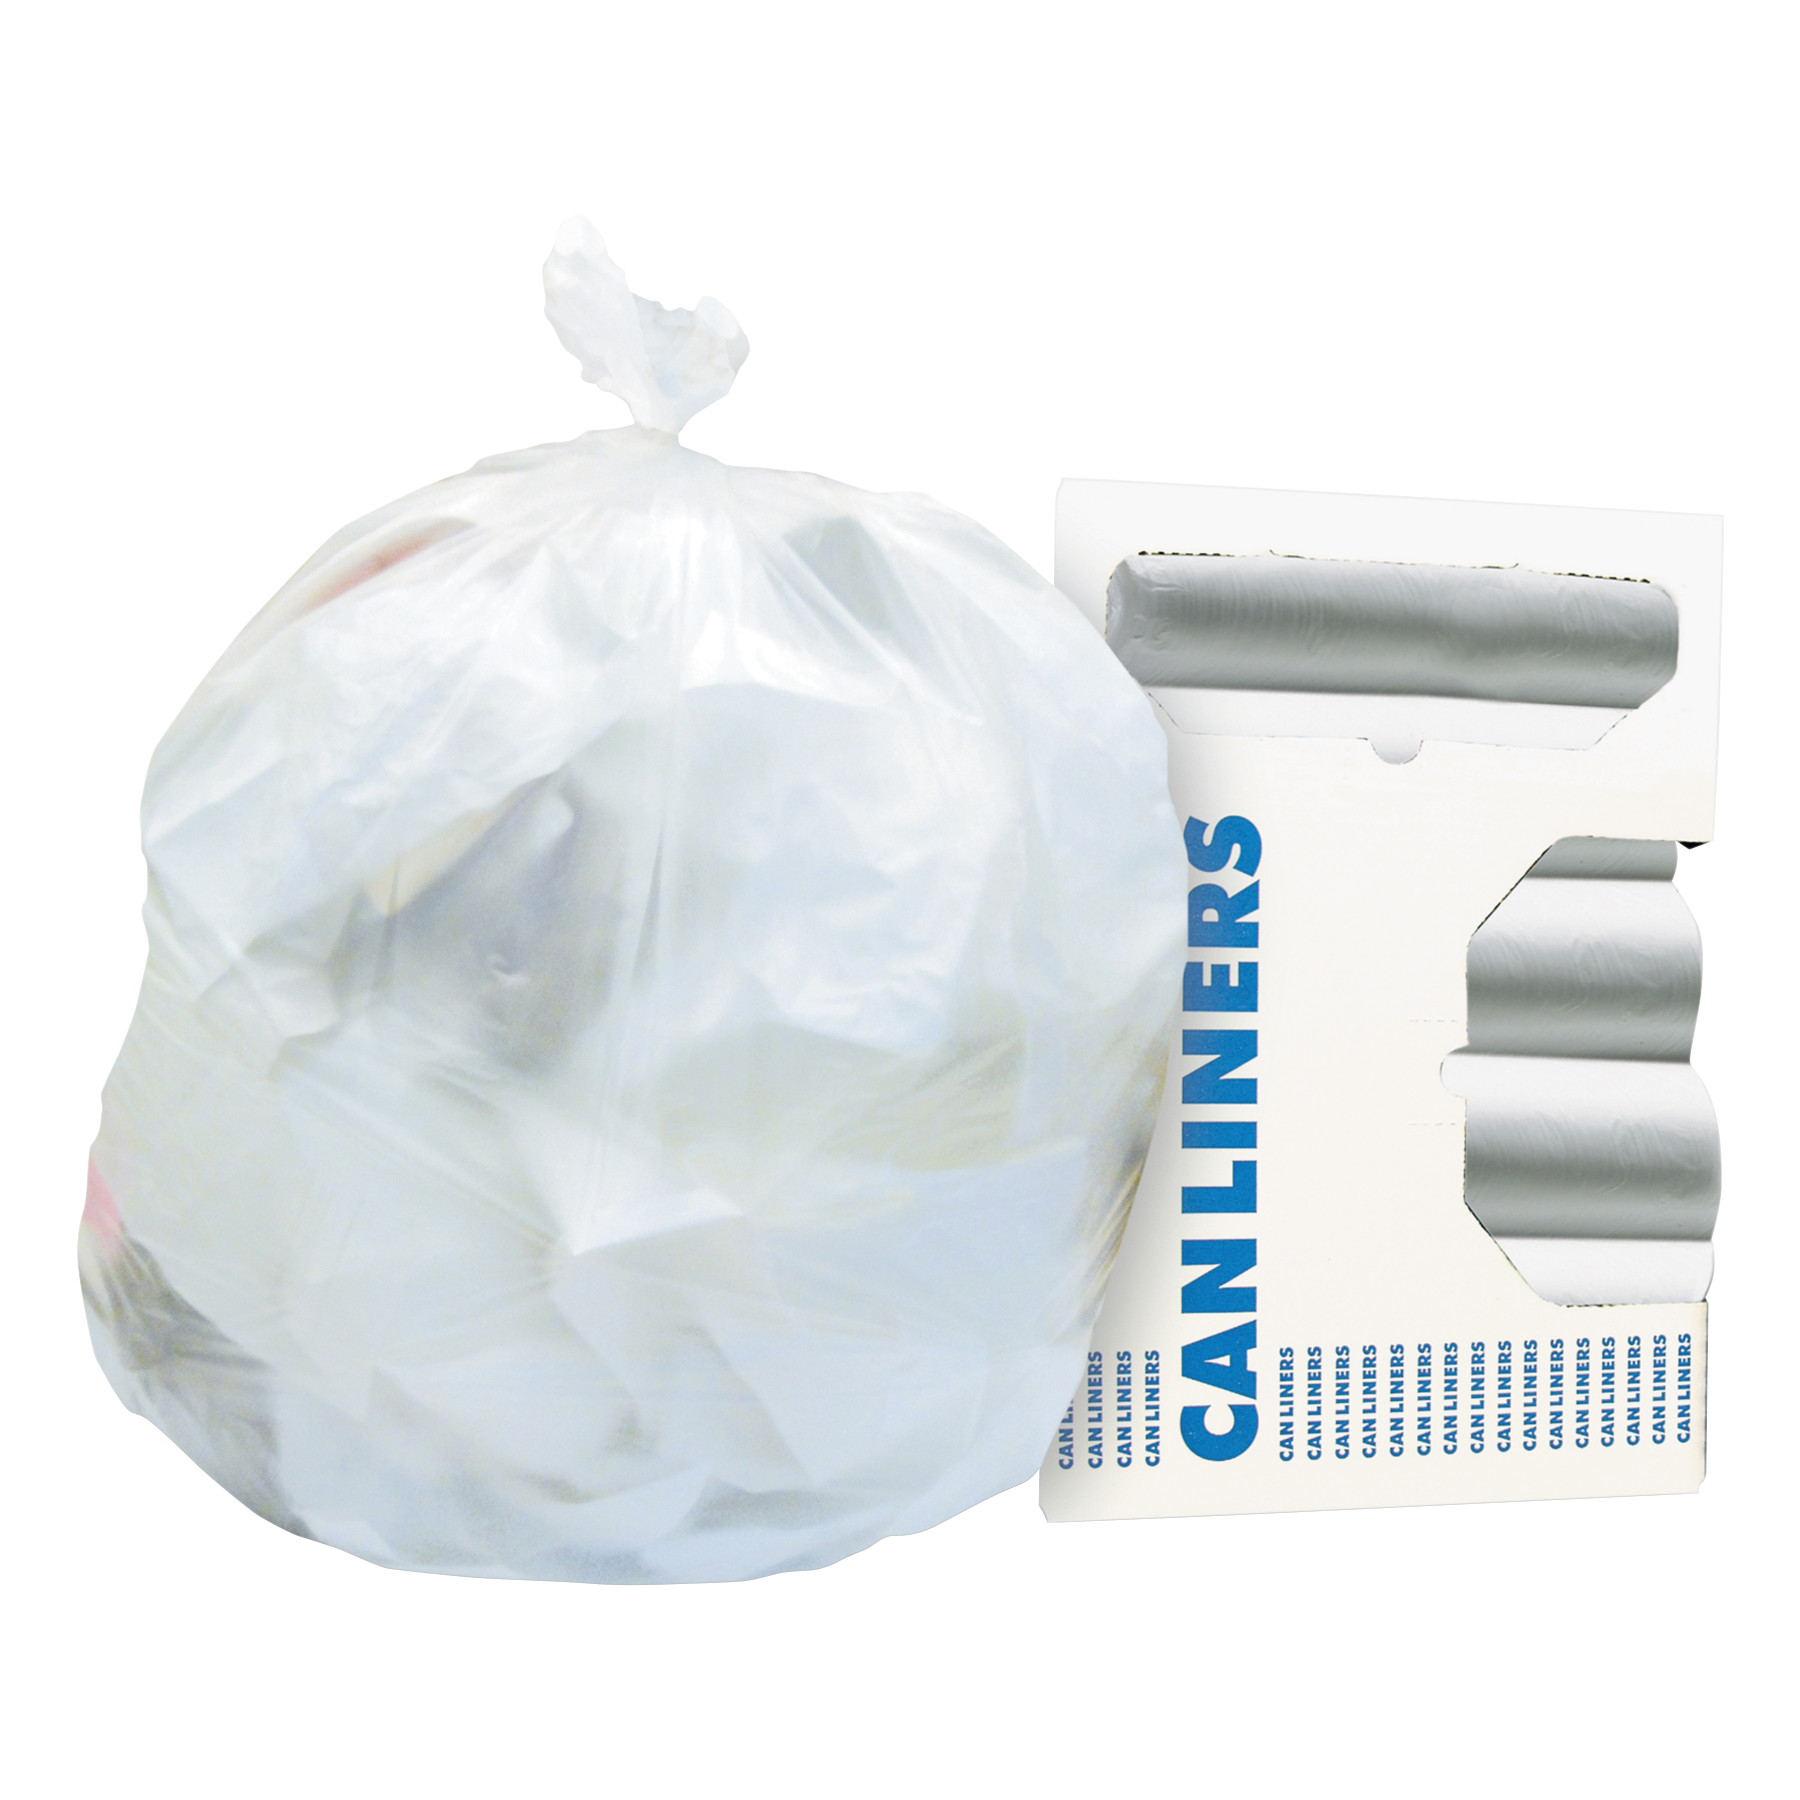 Heritage High-Density Coreless Trash Bags, 20-30gal, 10 mic, 30 x 37, Natural, 500/Carton